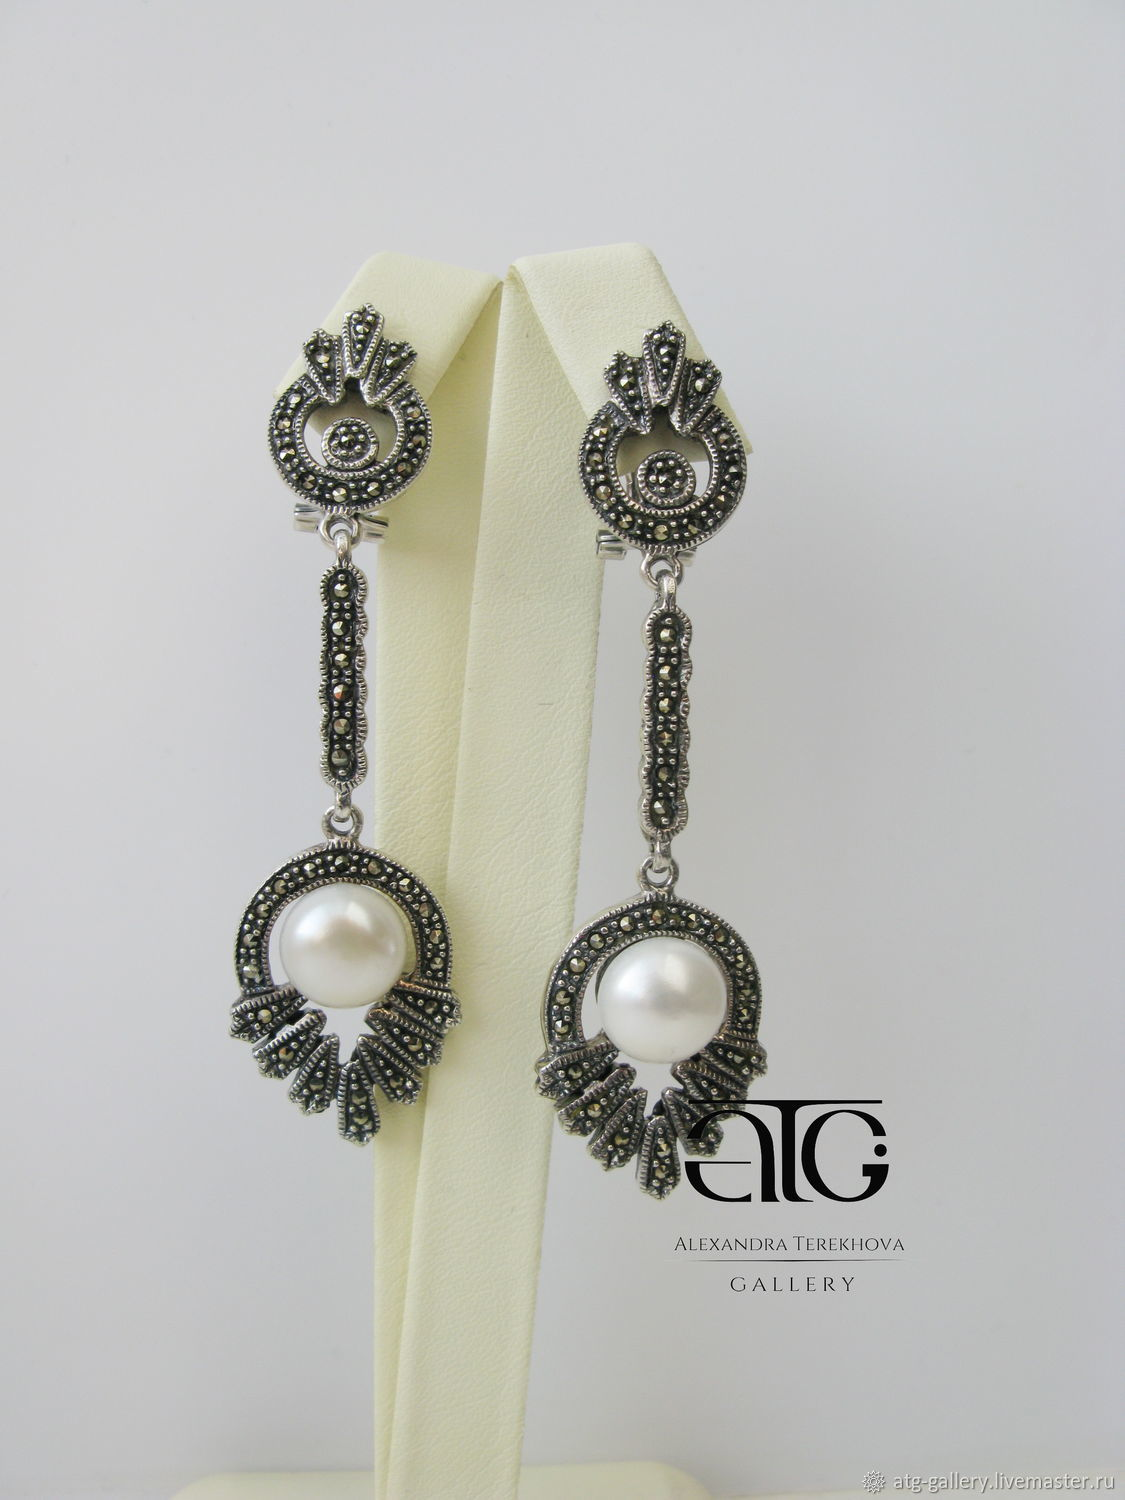 Long Earrings With Natural Large Smooth White Freshwater Pearls Very Beautiful